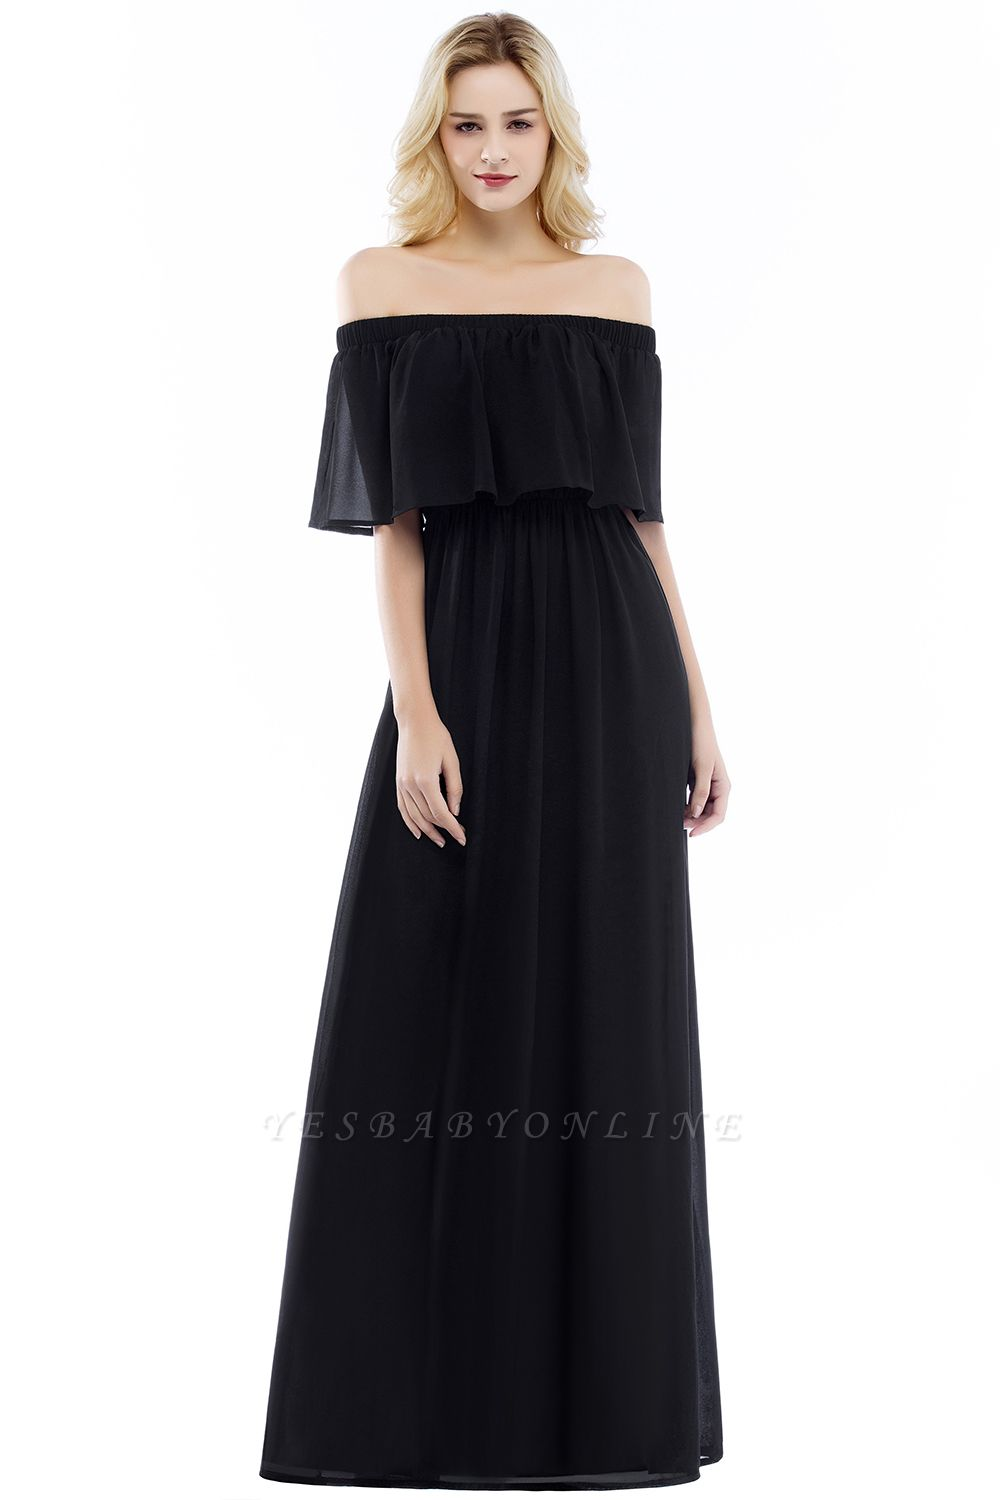 Cheap A-line Off-the-Shoulder Chiffon Bridesmaid Dress in Stock